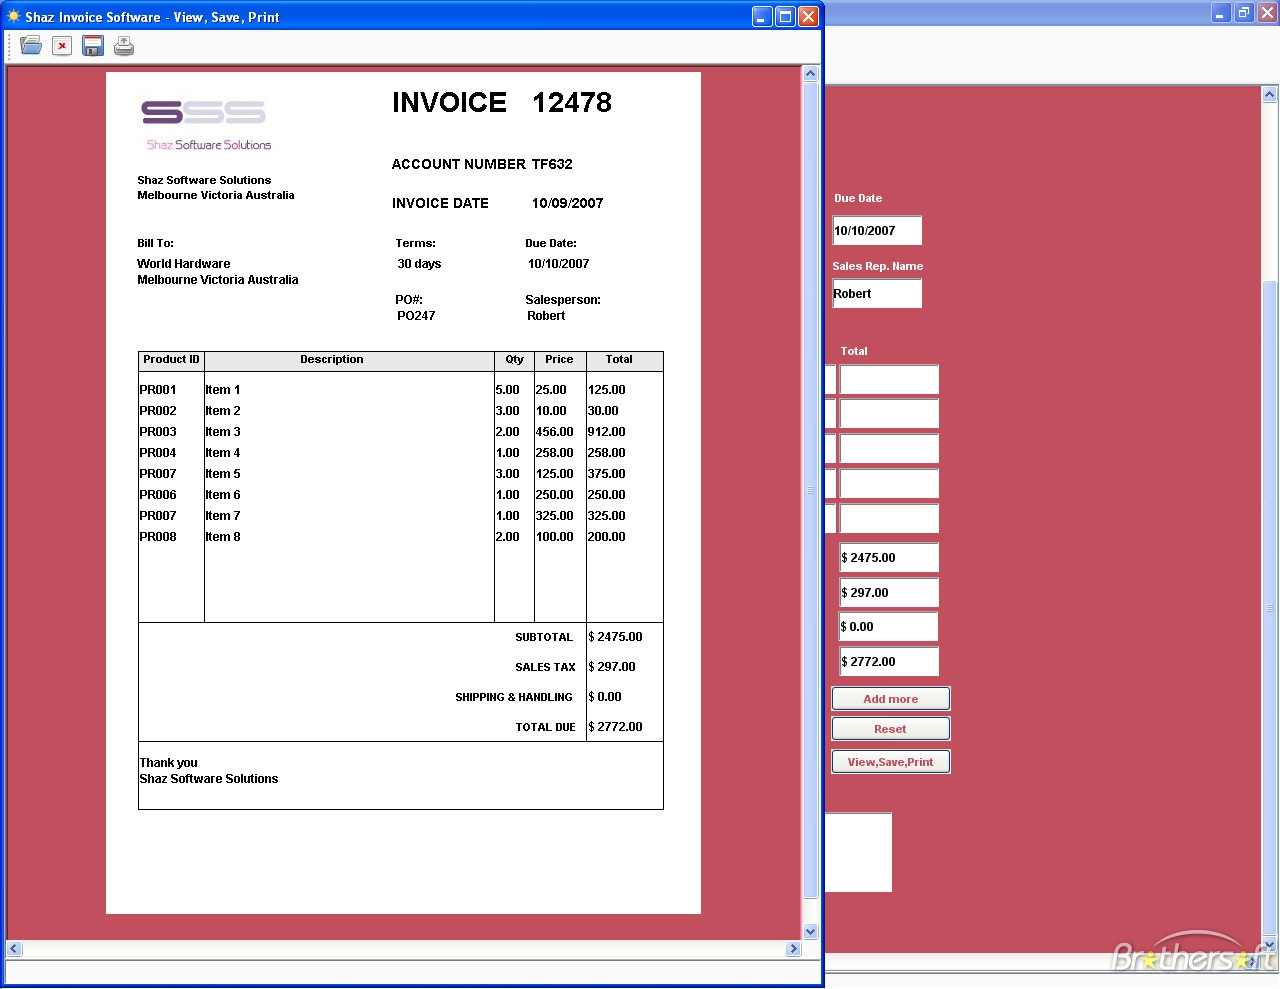 download free shaz invoice software shaz invoice software 100 free invoice software